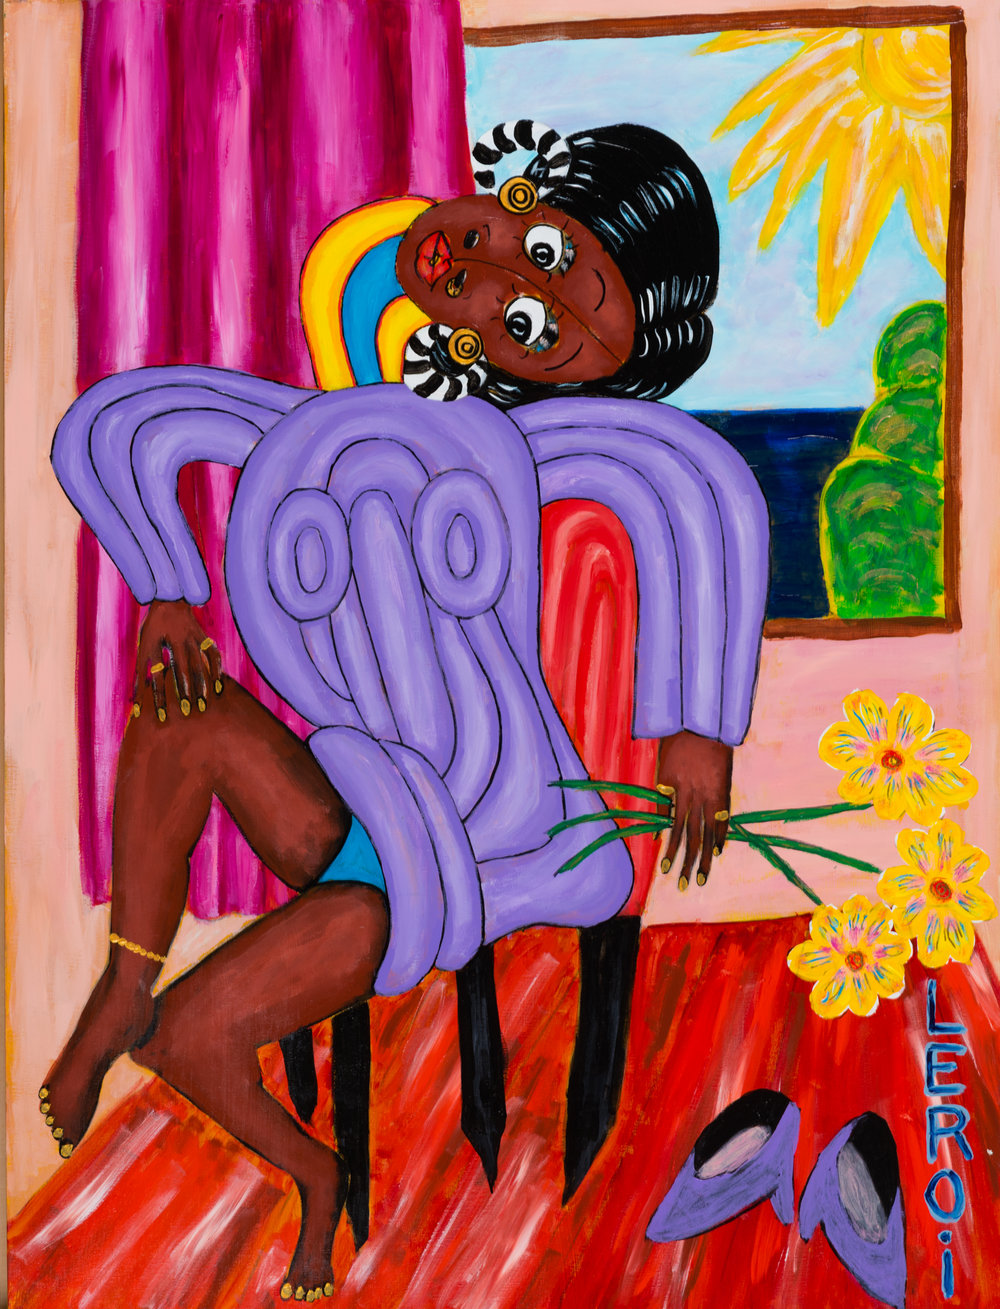 _2_LEROI_All Dressed Up and Nowhere to Go_2007_Oil and acrylic on canvas_40x30 inches_$4,500.jpg